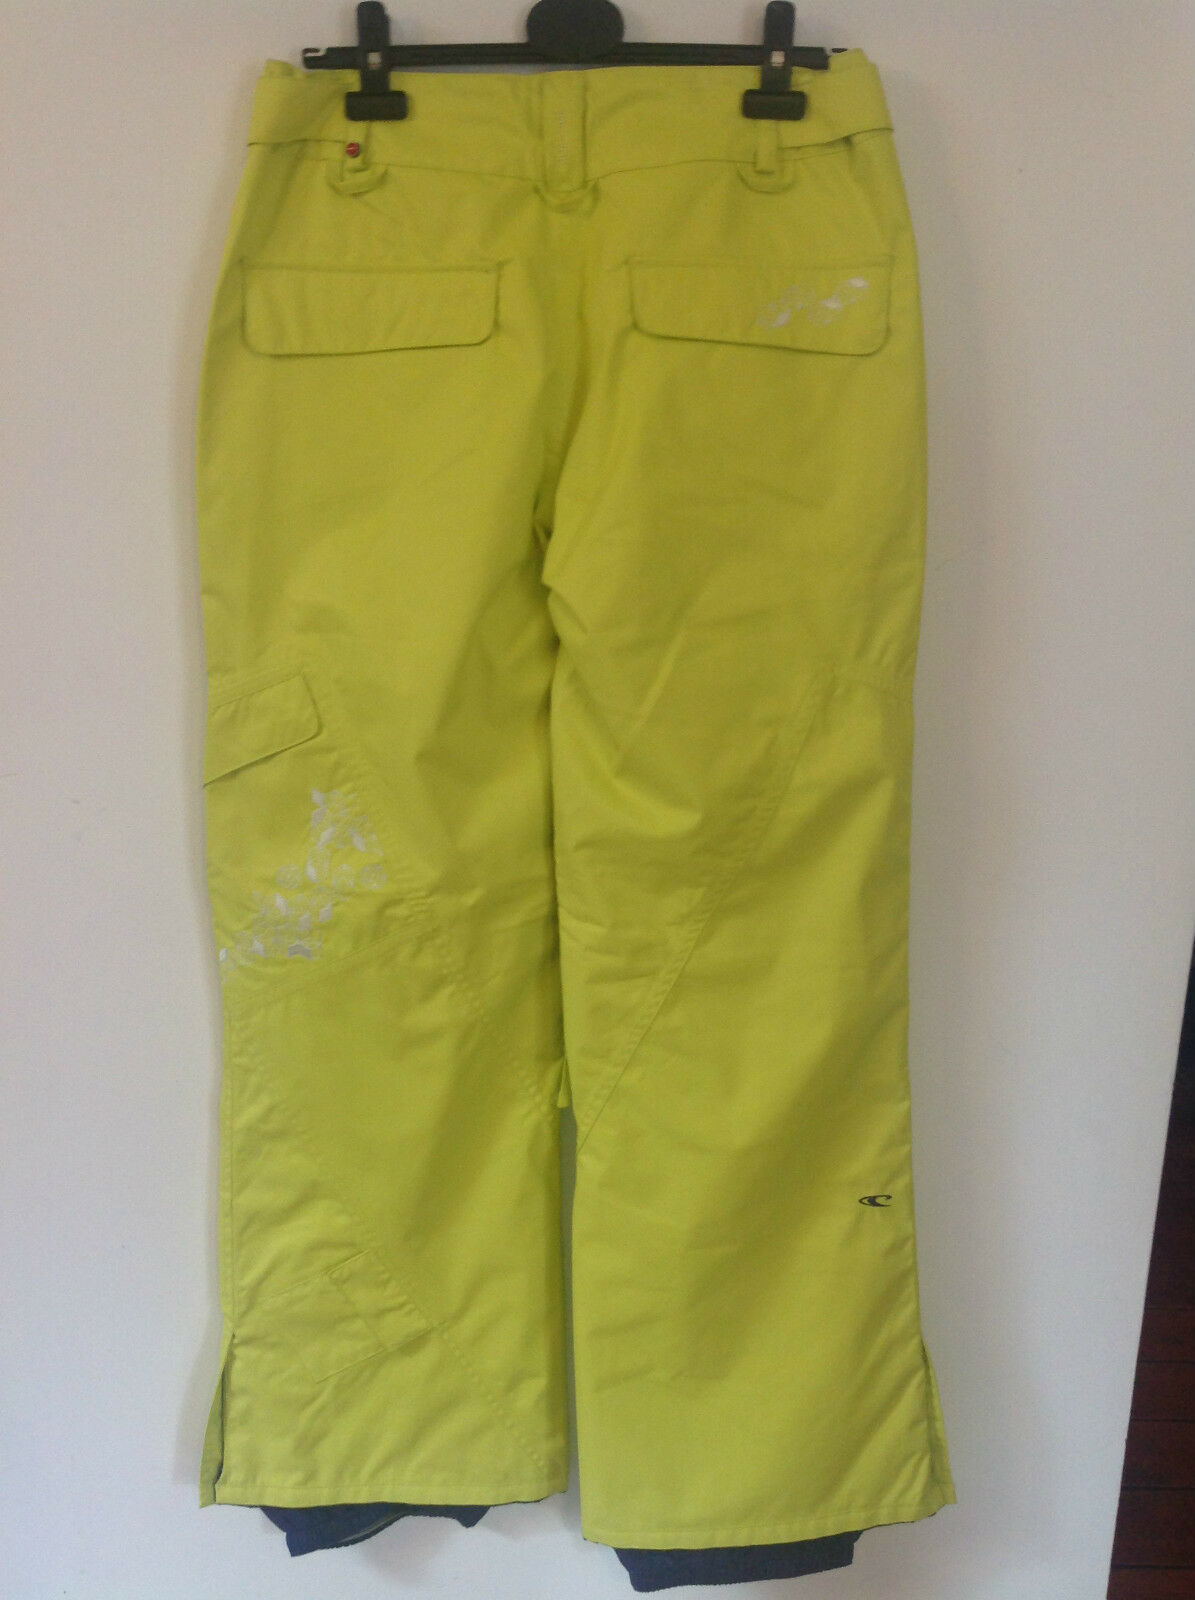 O'NEILL Gelb   WATERPROOF RELAXED FIT SKI TROUSERS   Gelb    RET     BNWT d4d5d8